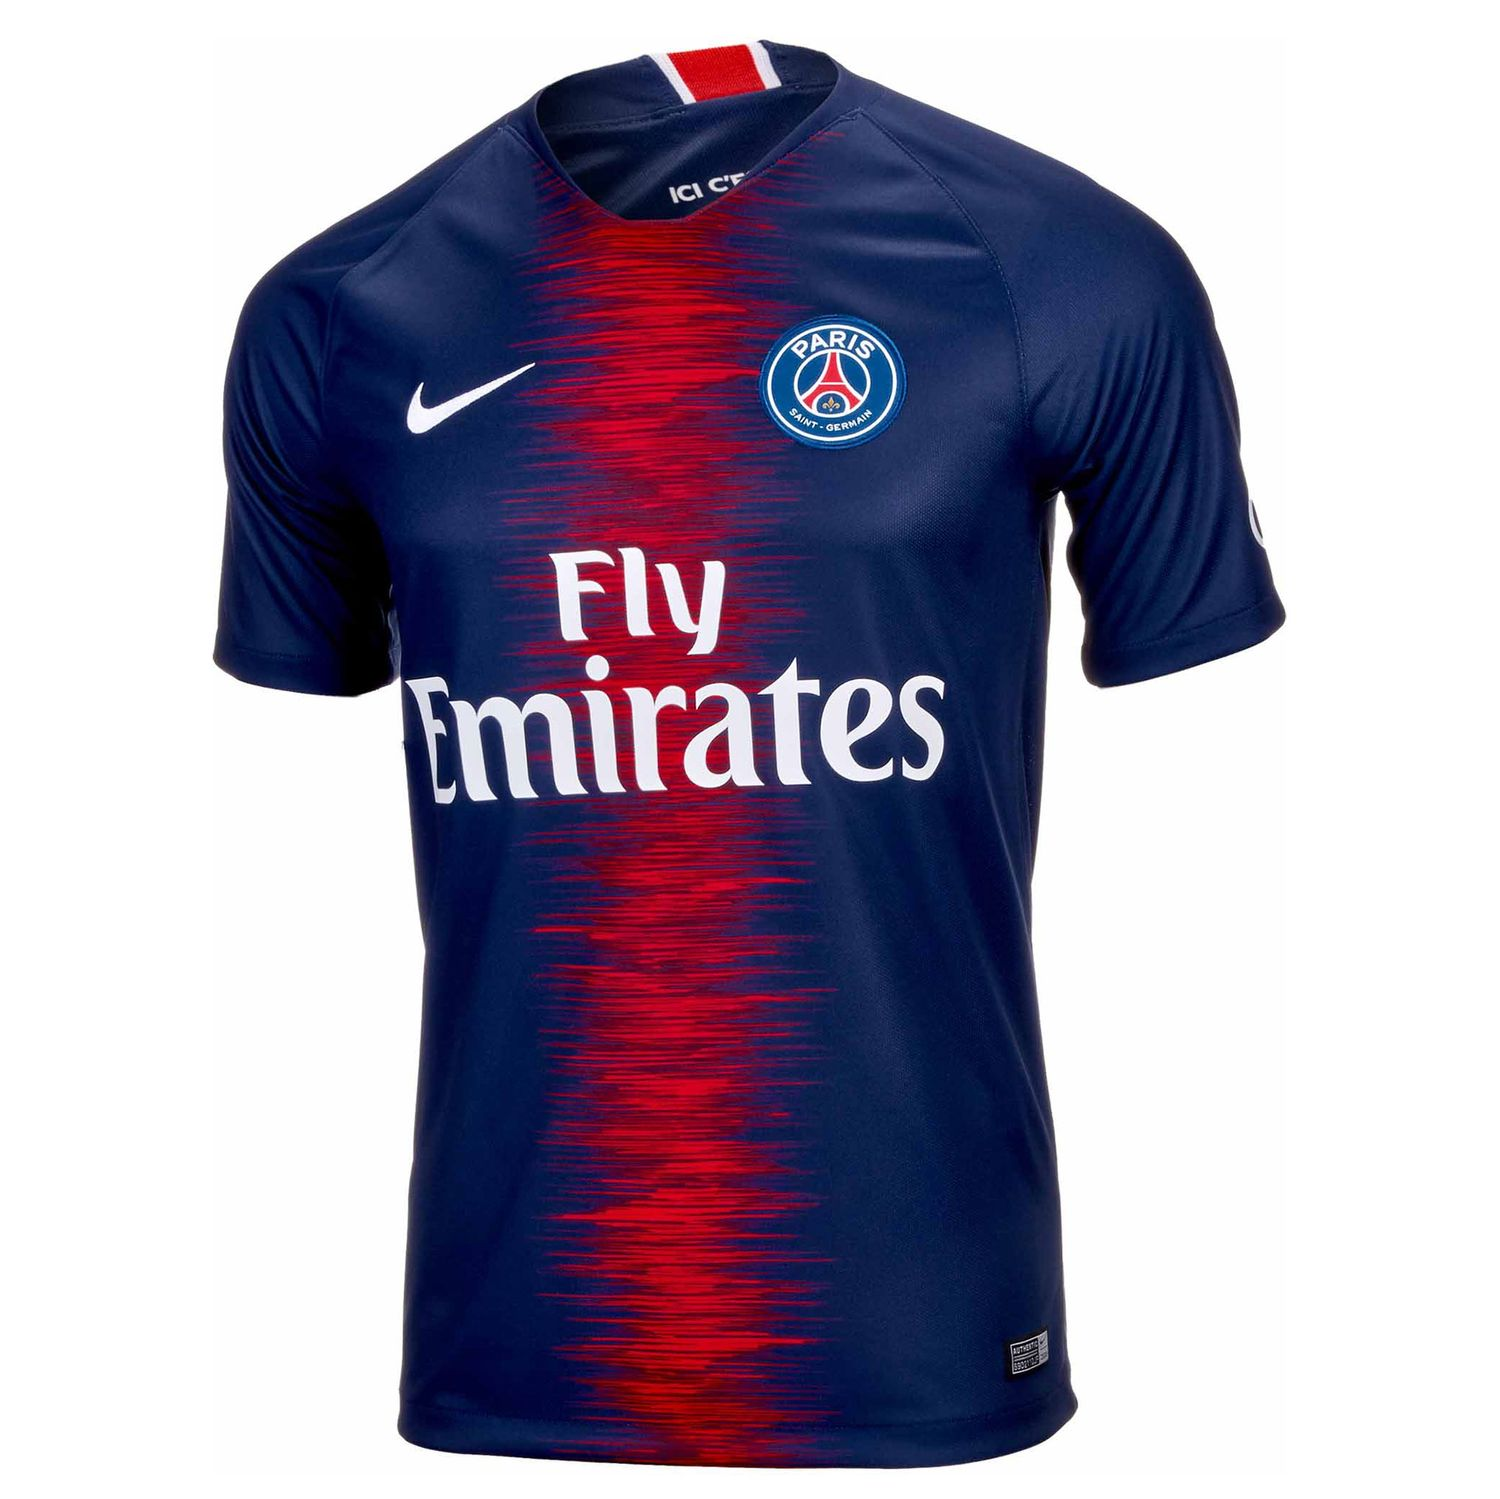 hot products exclusive range cheap Nike Men Paris Saint-Germain Trikot Herren blau rot 894432 411